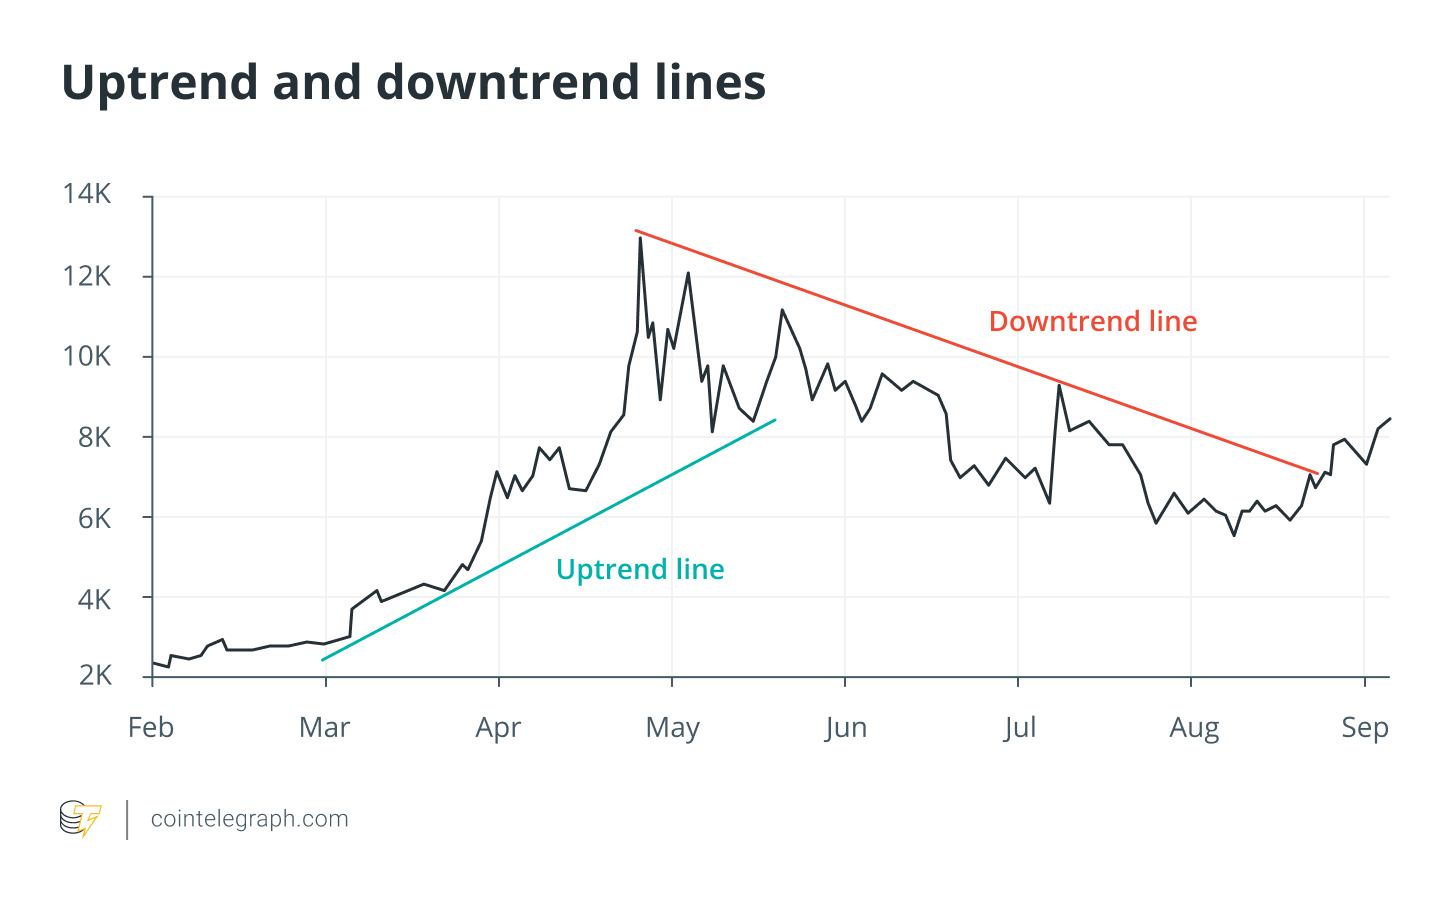 Uptrend and downtrend lines